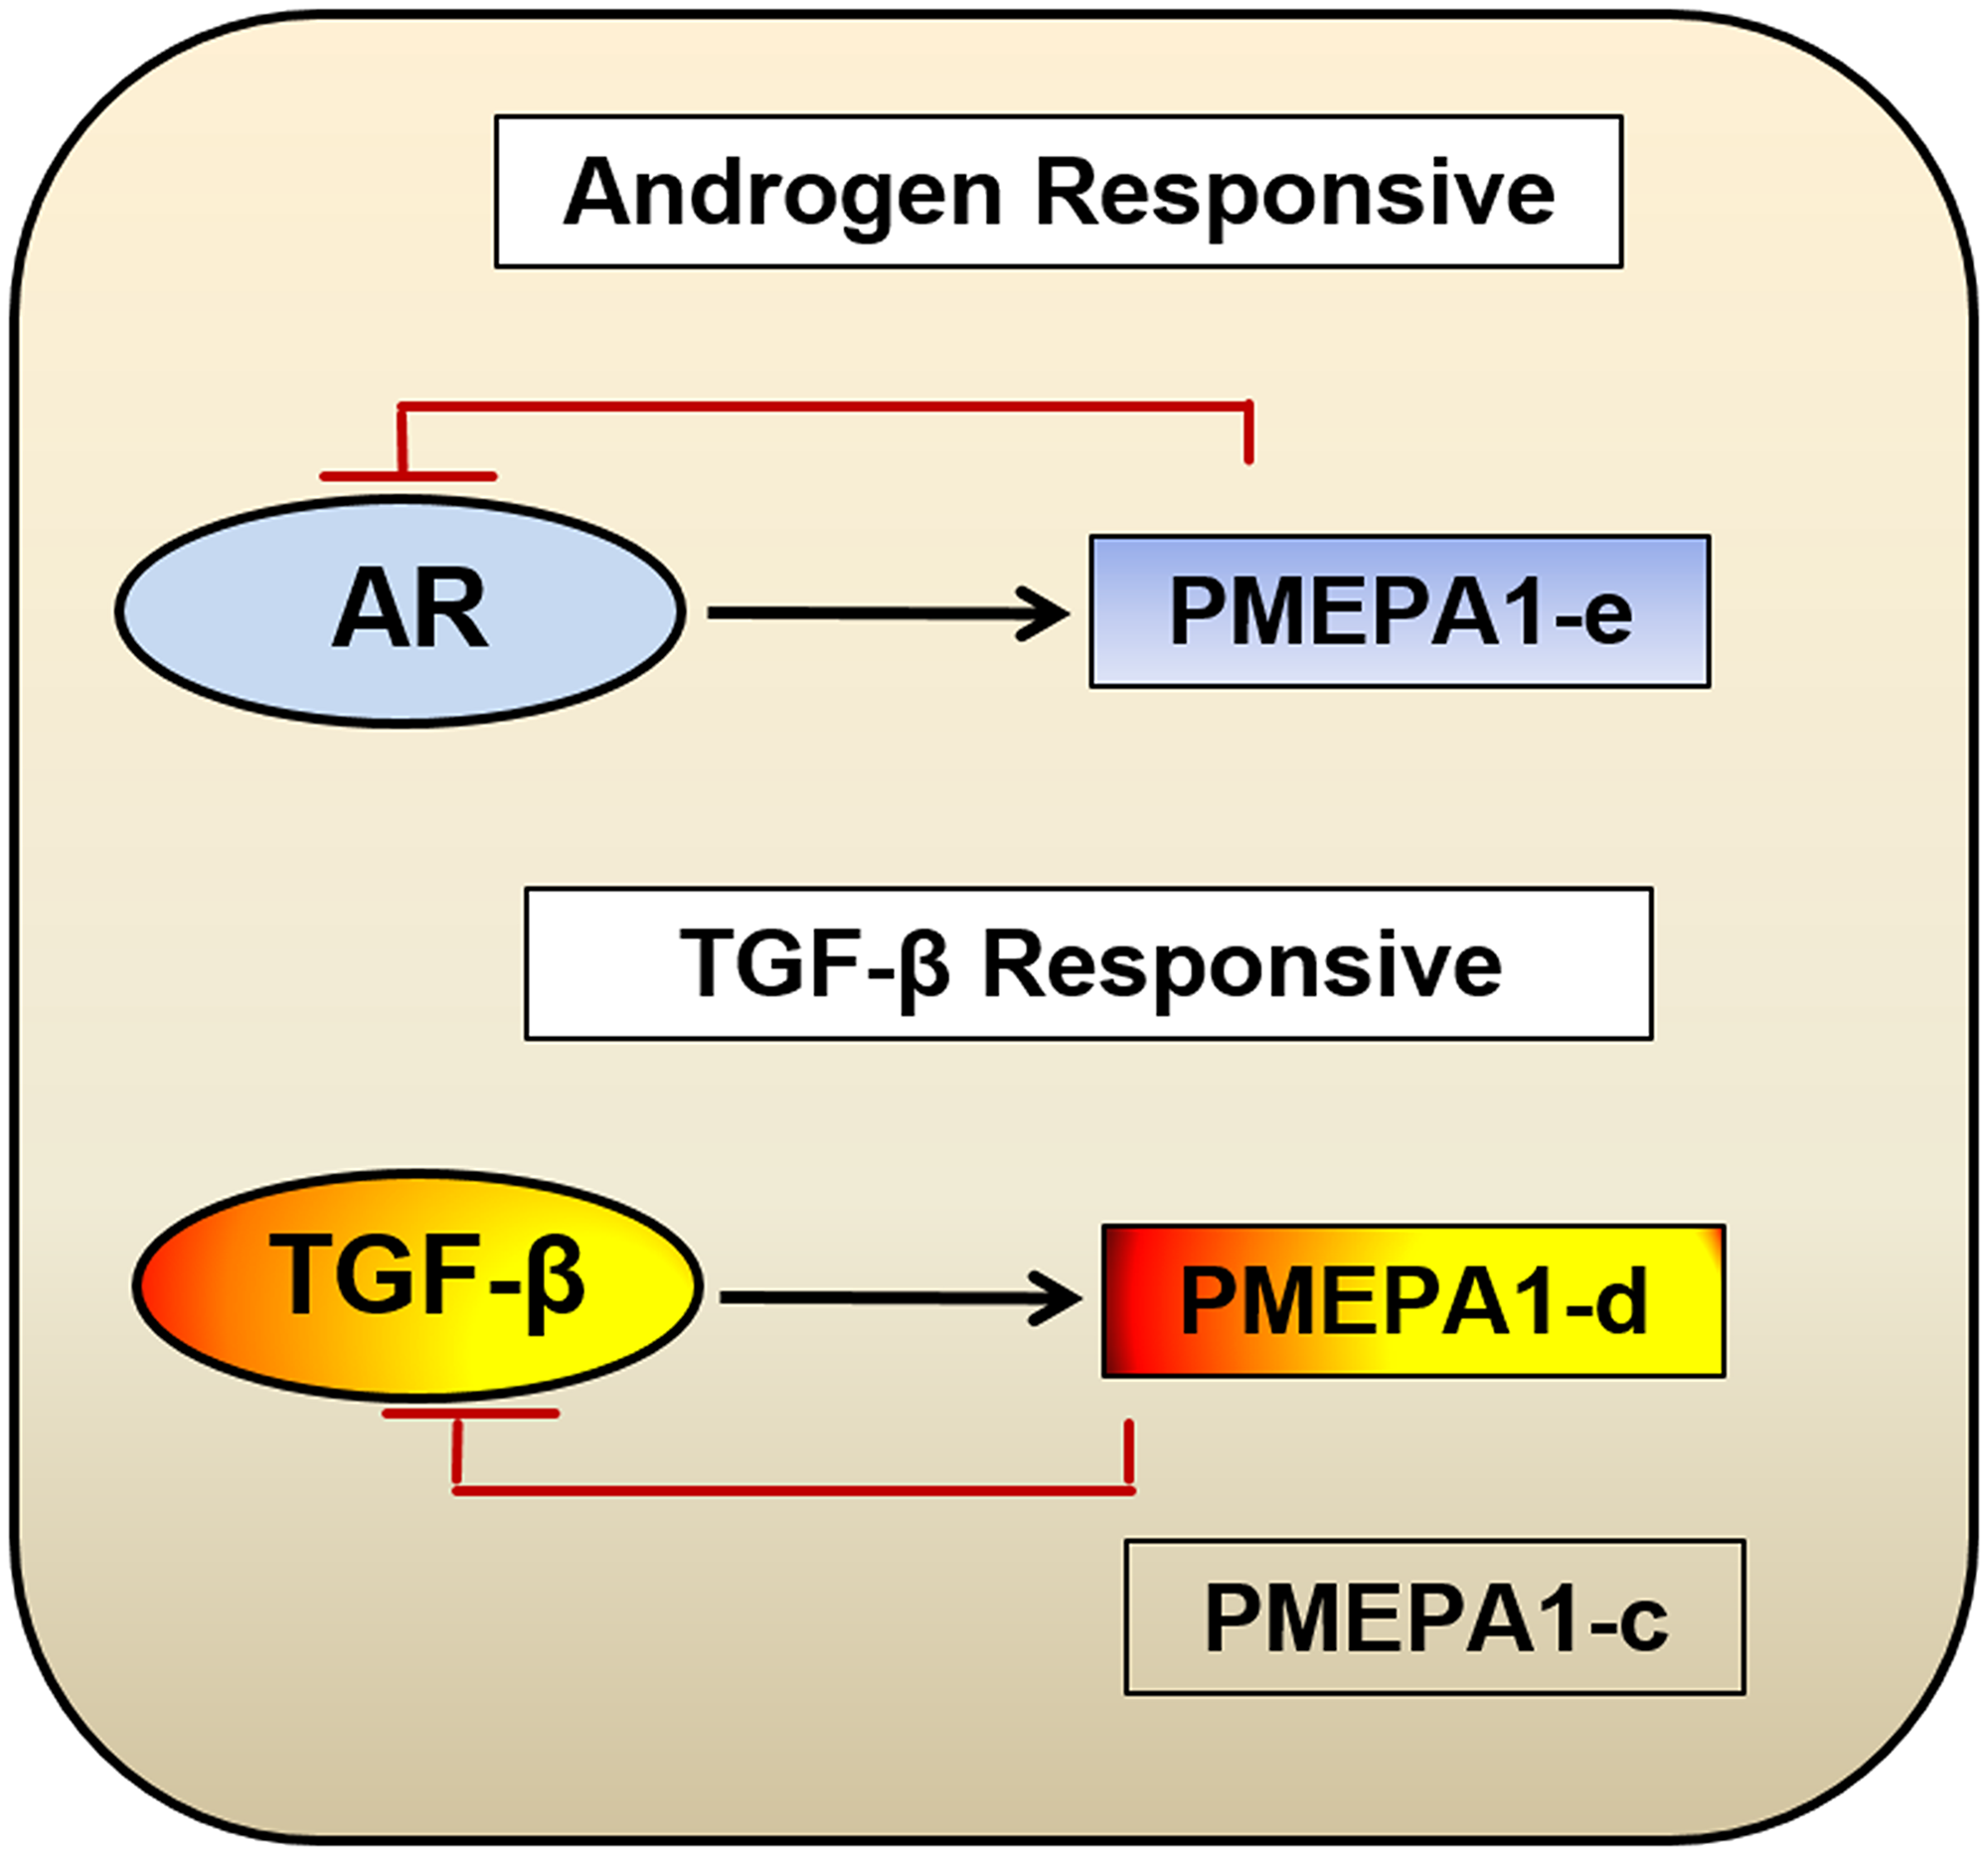 Model for biological function categorization of PMEPA1 isoforms (c, d and e) in the context of prostate cancer.